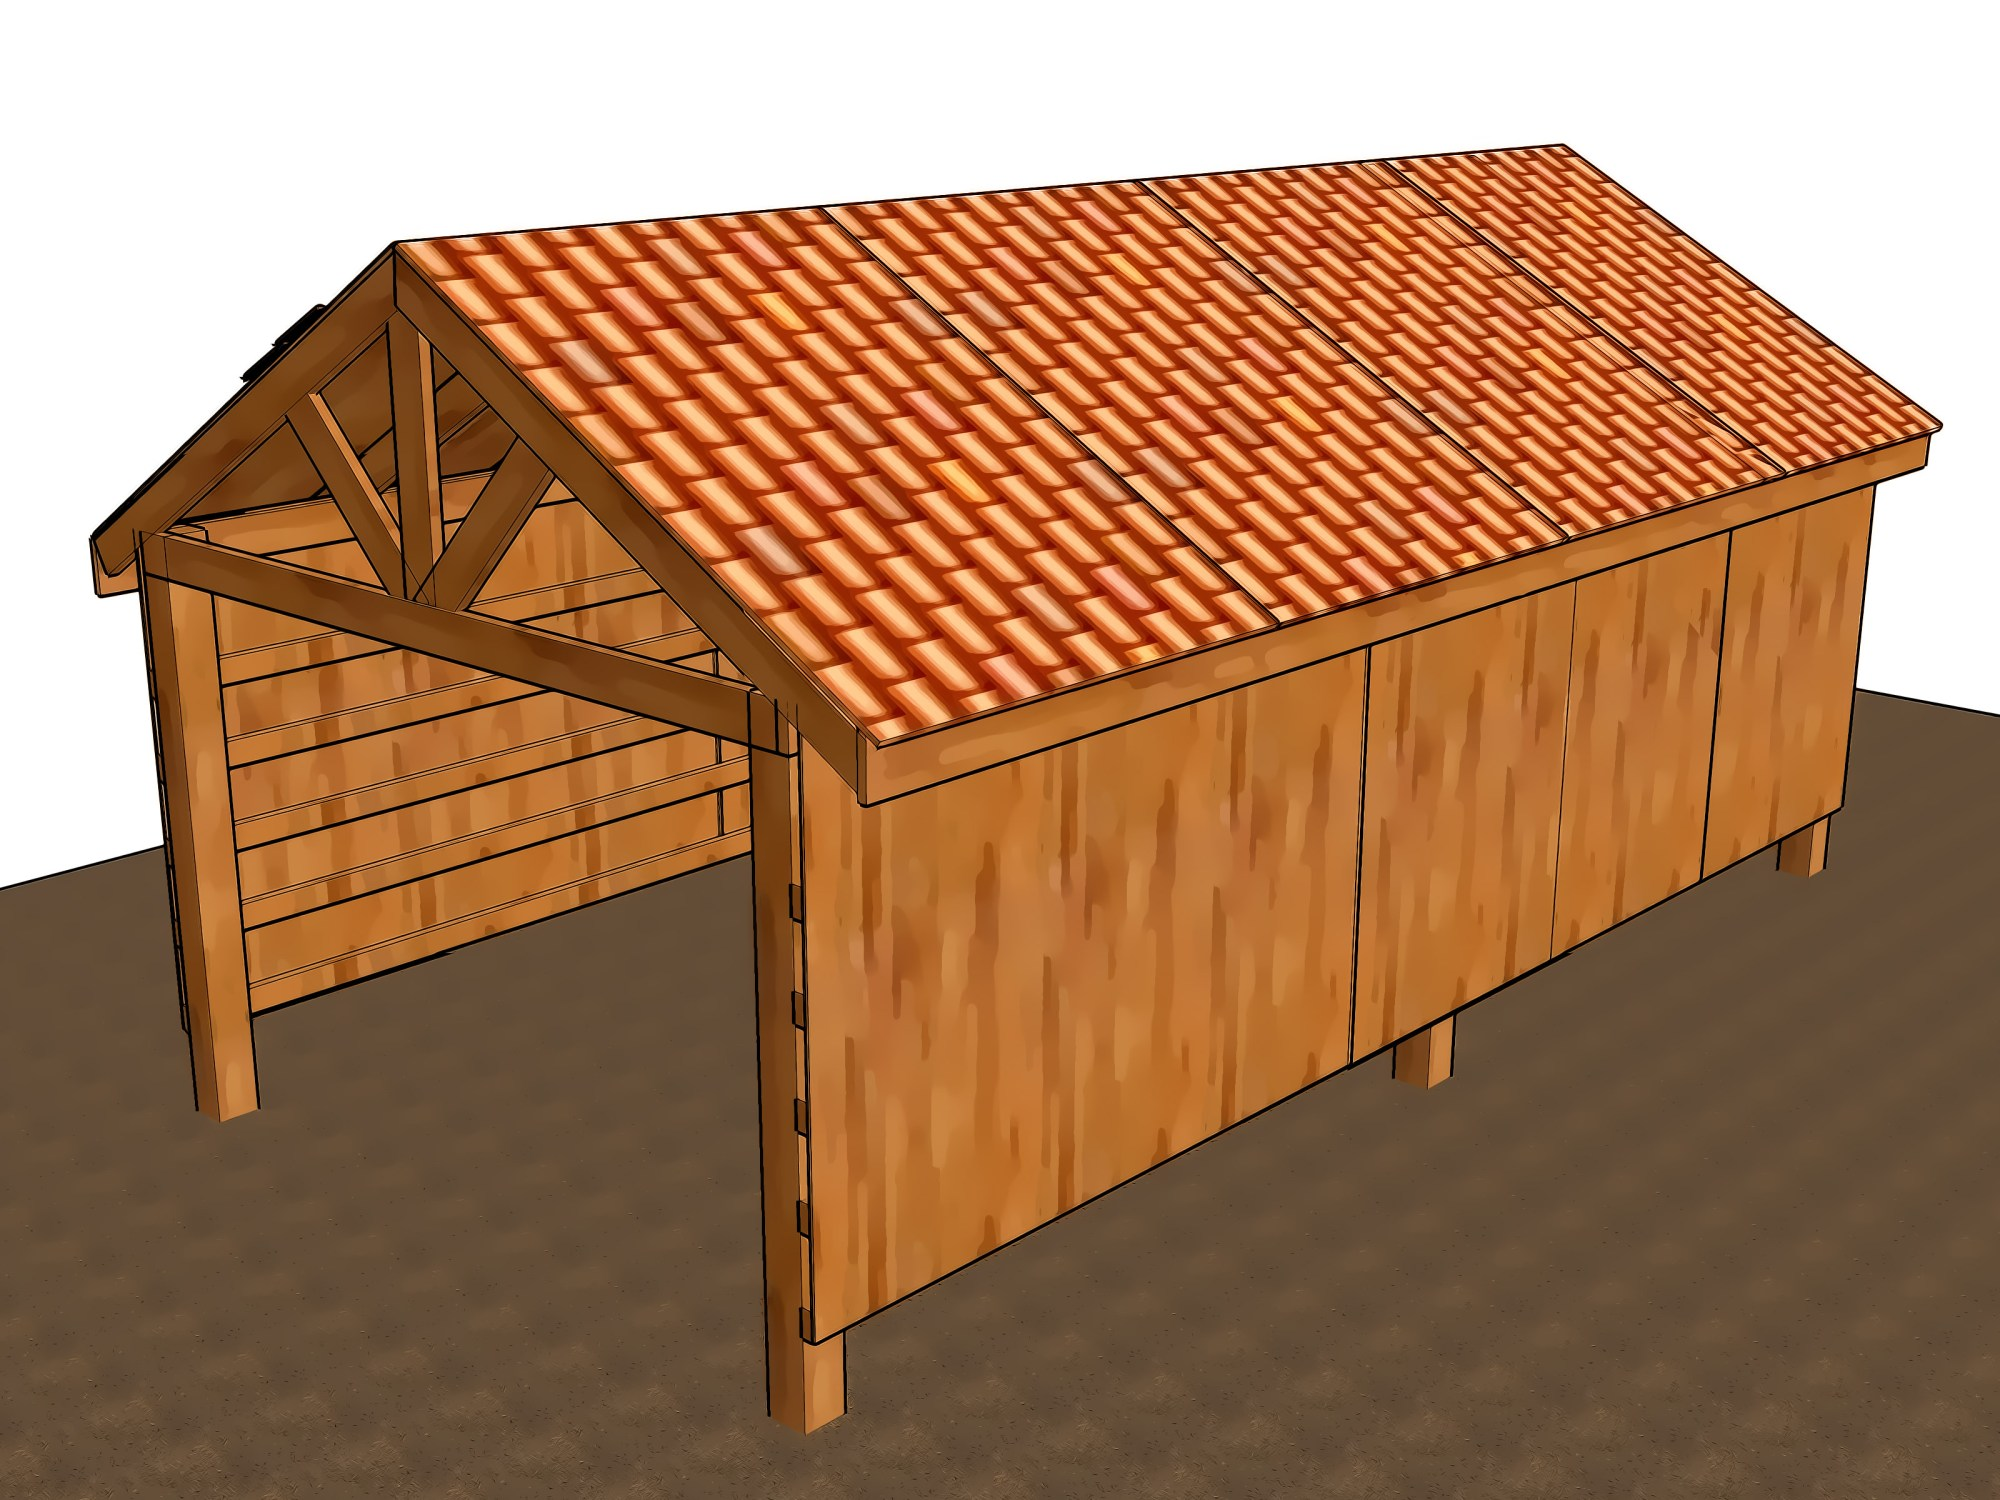 hight resolution of how to build a pole barn